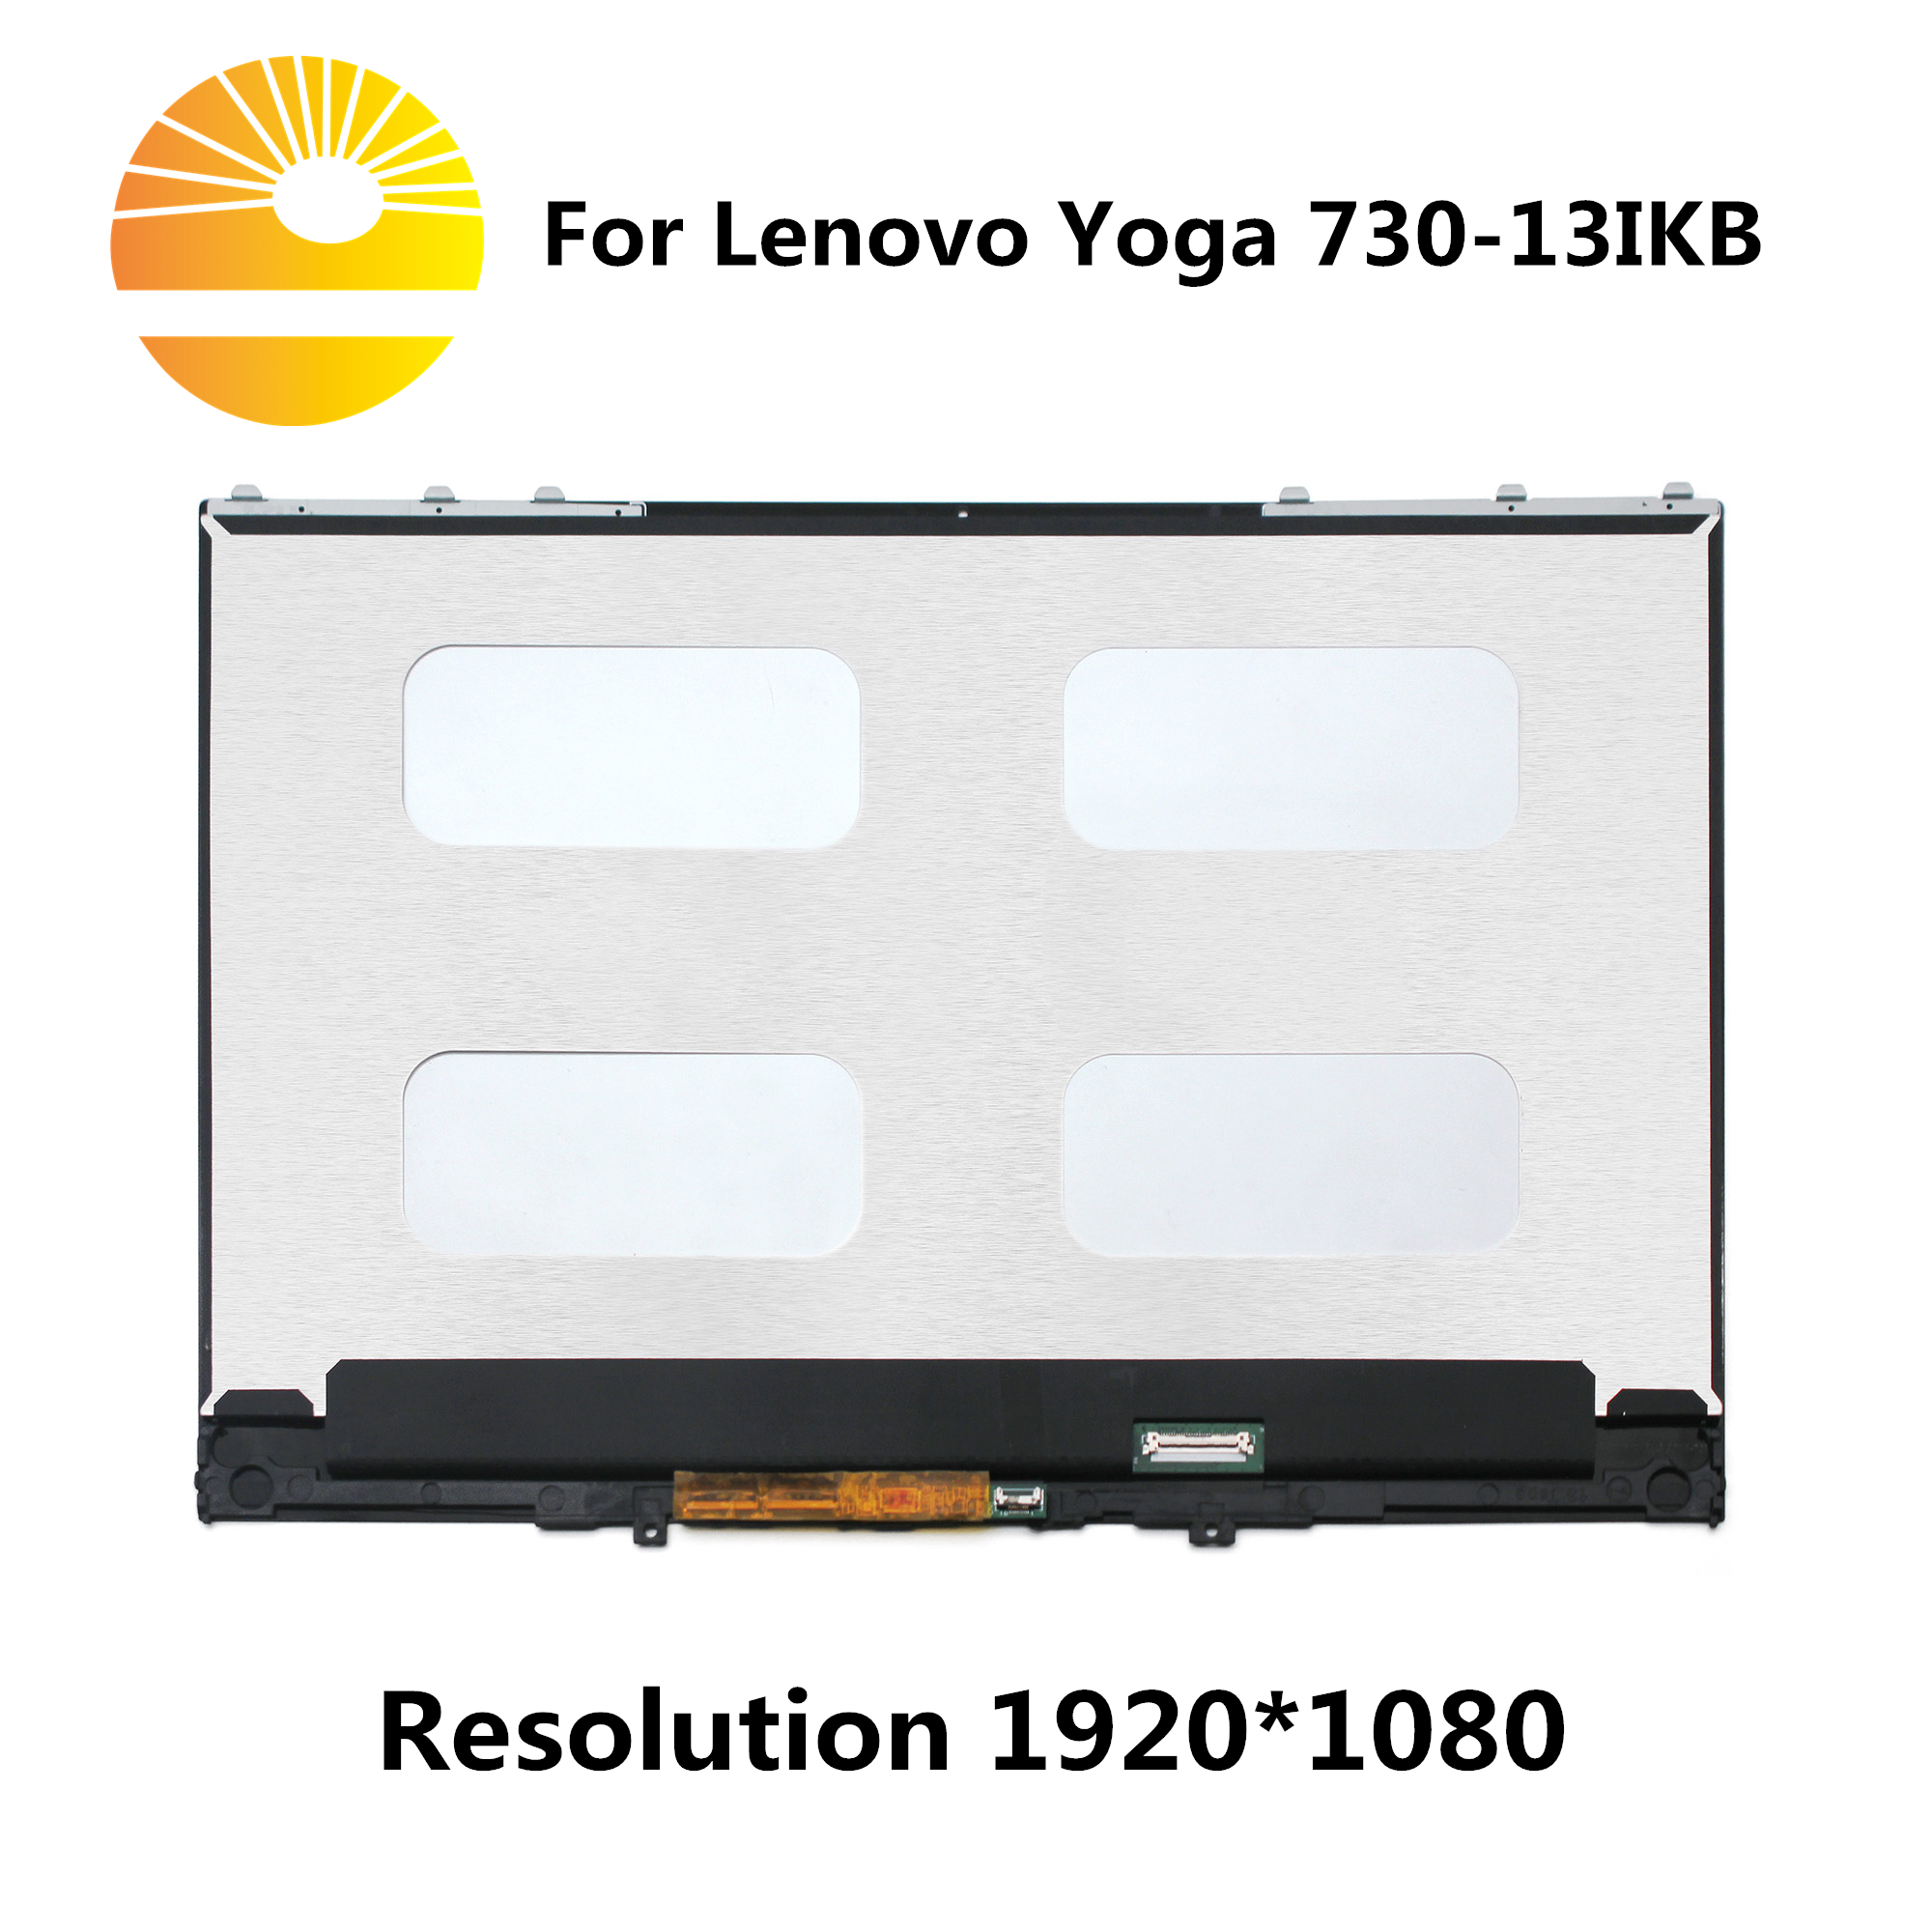 New LCD Display Matrix Touch Screen Digitizer Assembly For Lenovo Yoga 730 13IKB 81CT0008US 81CT000BFR 81CT000DFR 81CT0023GELaptop LCD Screen   -